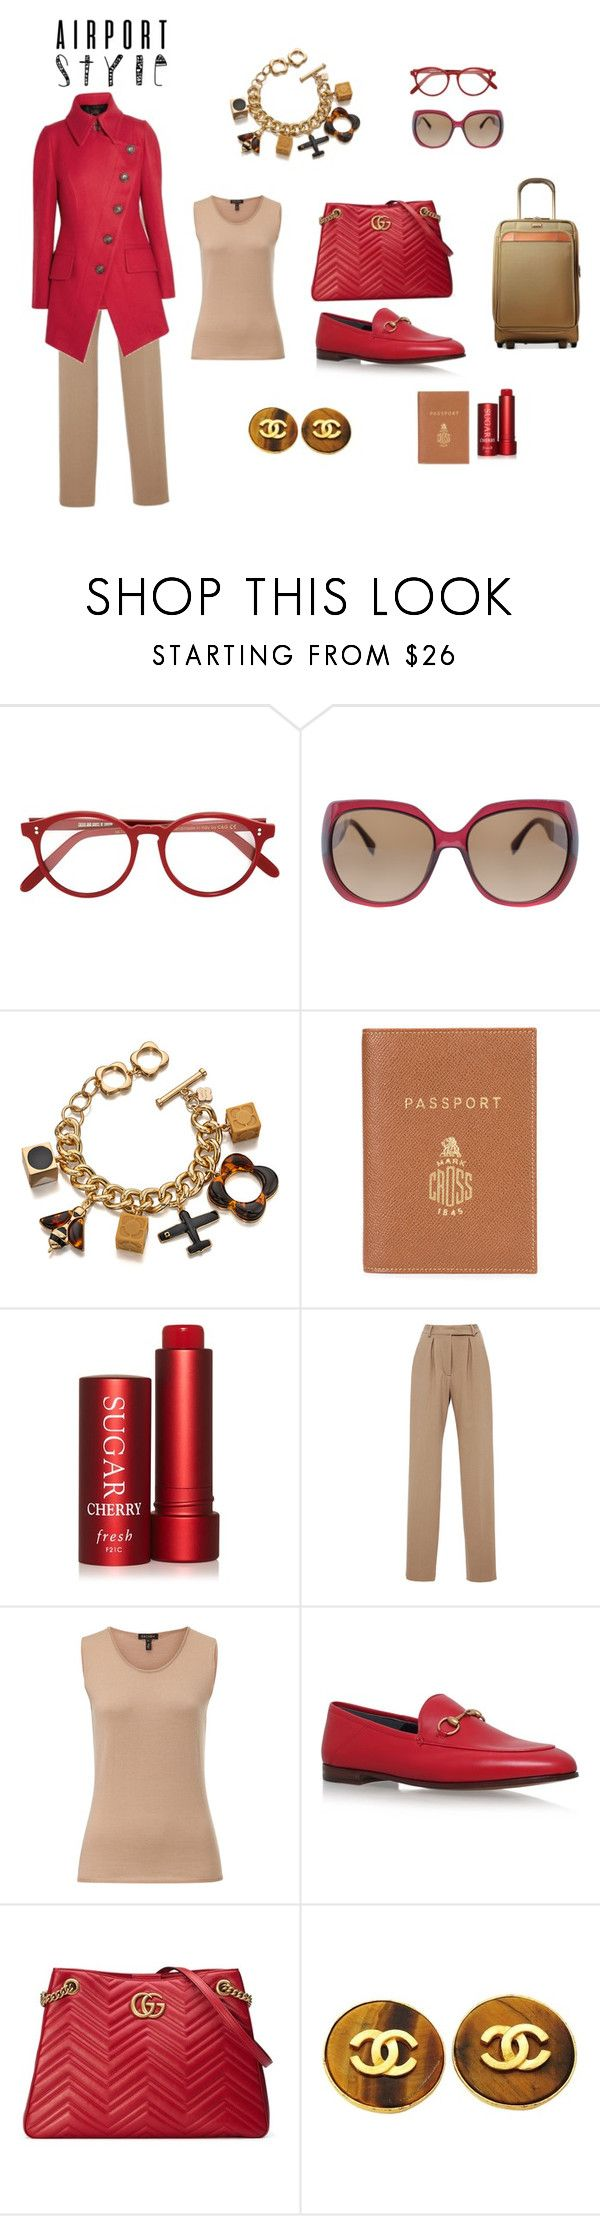 """""""RED-E for the Airport (contest)"""" by scolab ❤ liked on Polyvore featuring Cutler and Gross, Fendi, Orla Kiely, Mark Cross, Fresh, Hensely, ESCADA, Gucci, Chanel and Hartmann"""